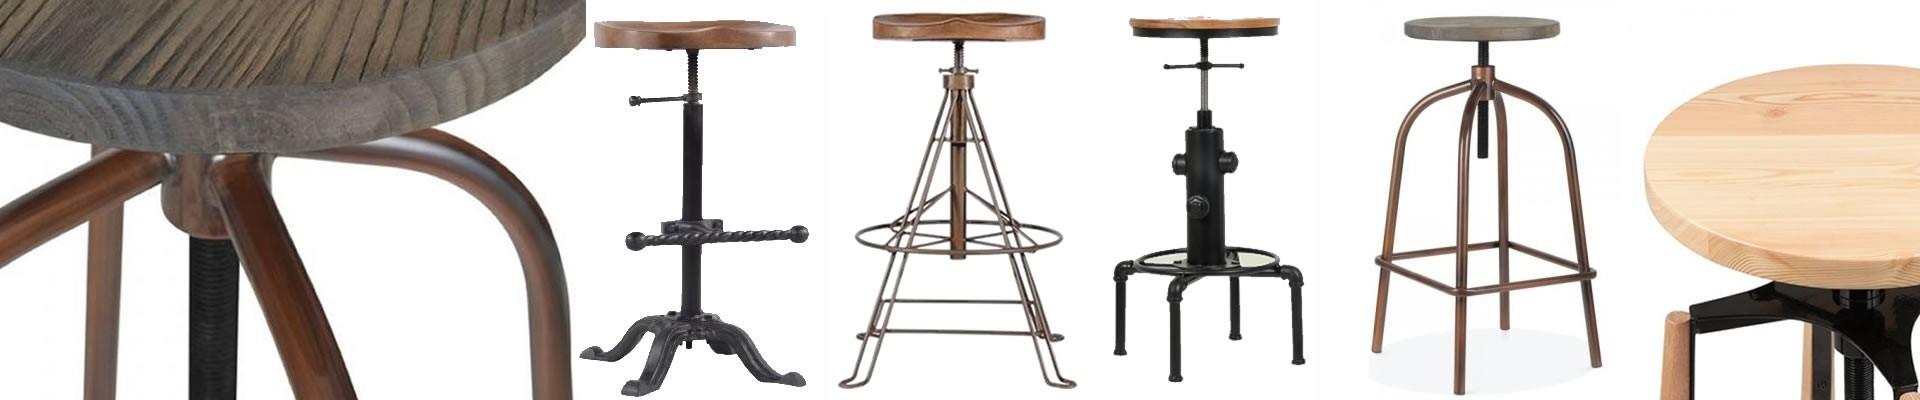 Bar Stools | Breakfast Bar Stools